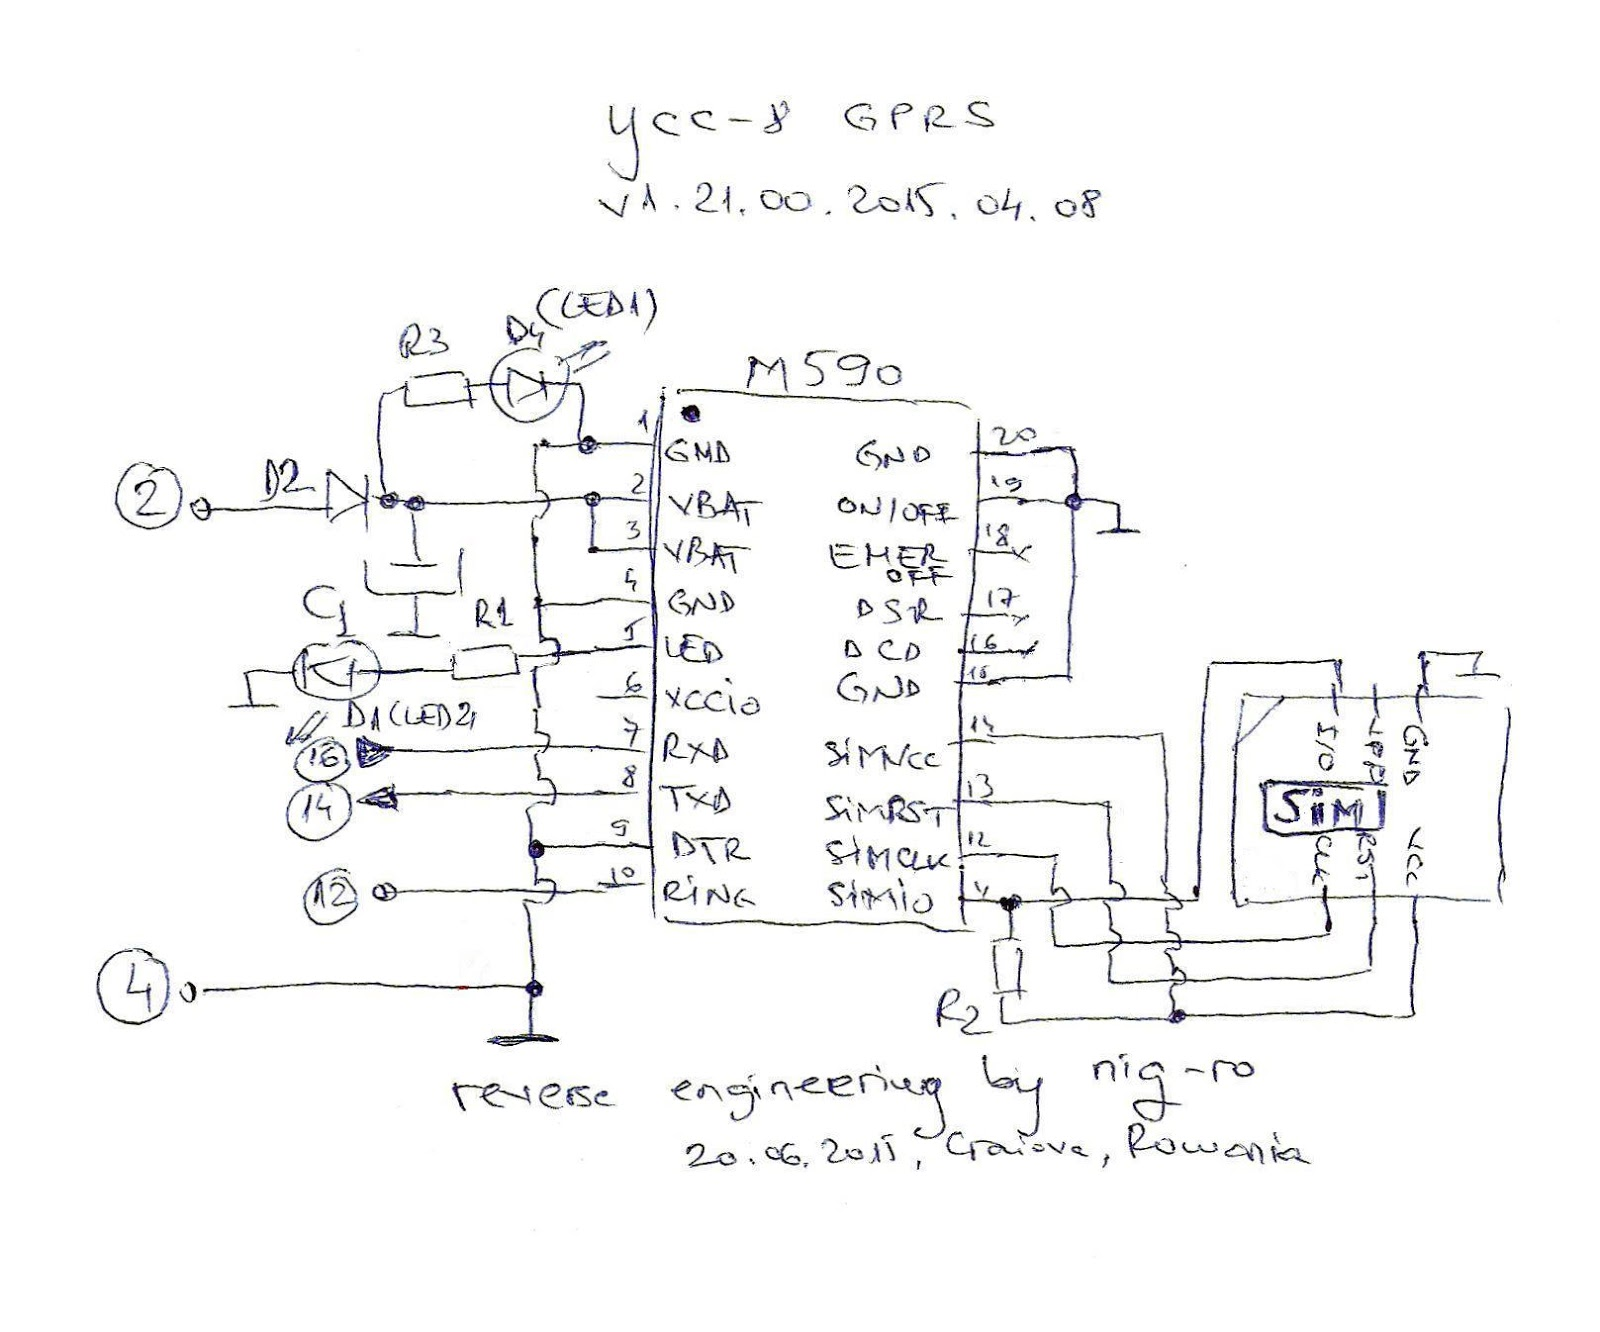 medium resolution of wrg 2570 lexus rx300 wiring diagram cpu pinout and is clear is a simplified